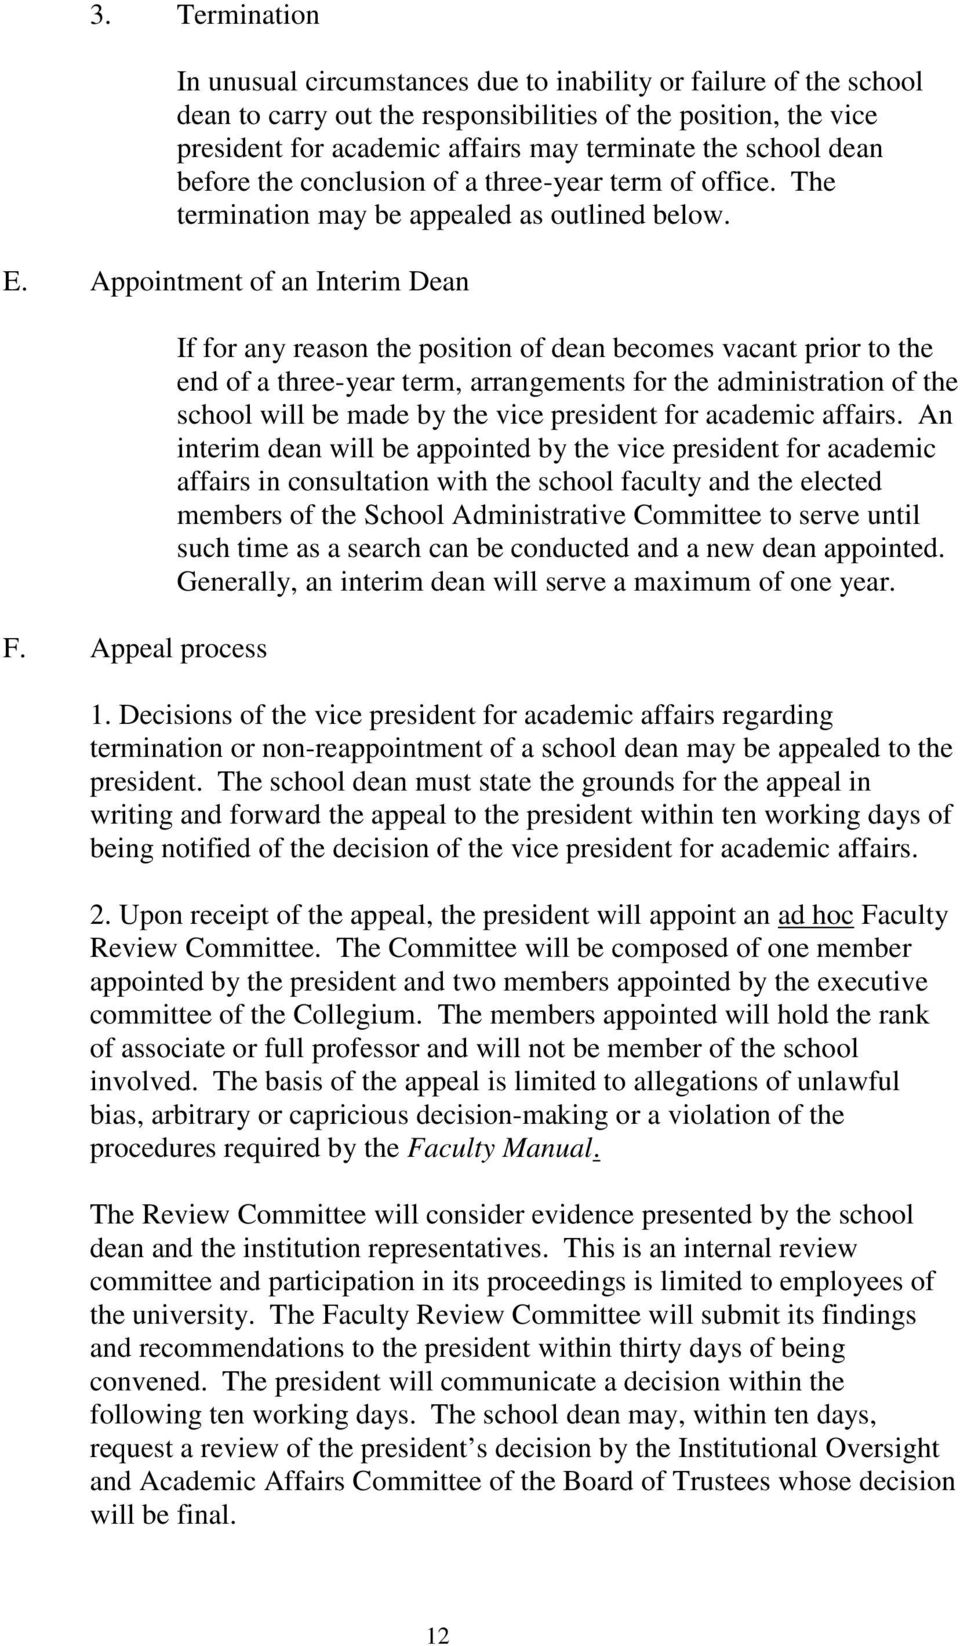 Appeal process If for any reason the position of dean becomes vacant prior to the end of a three-year term, arrangements for the administration of the school will be made by the vice president for